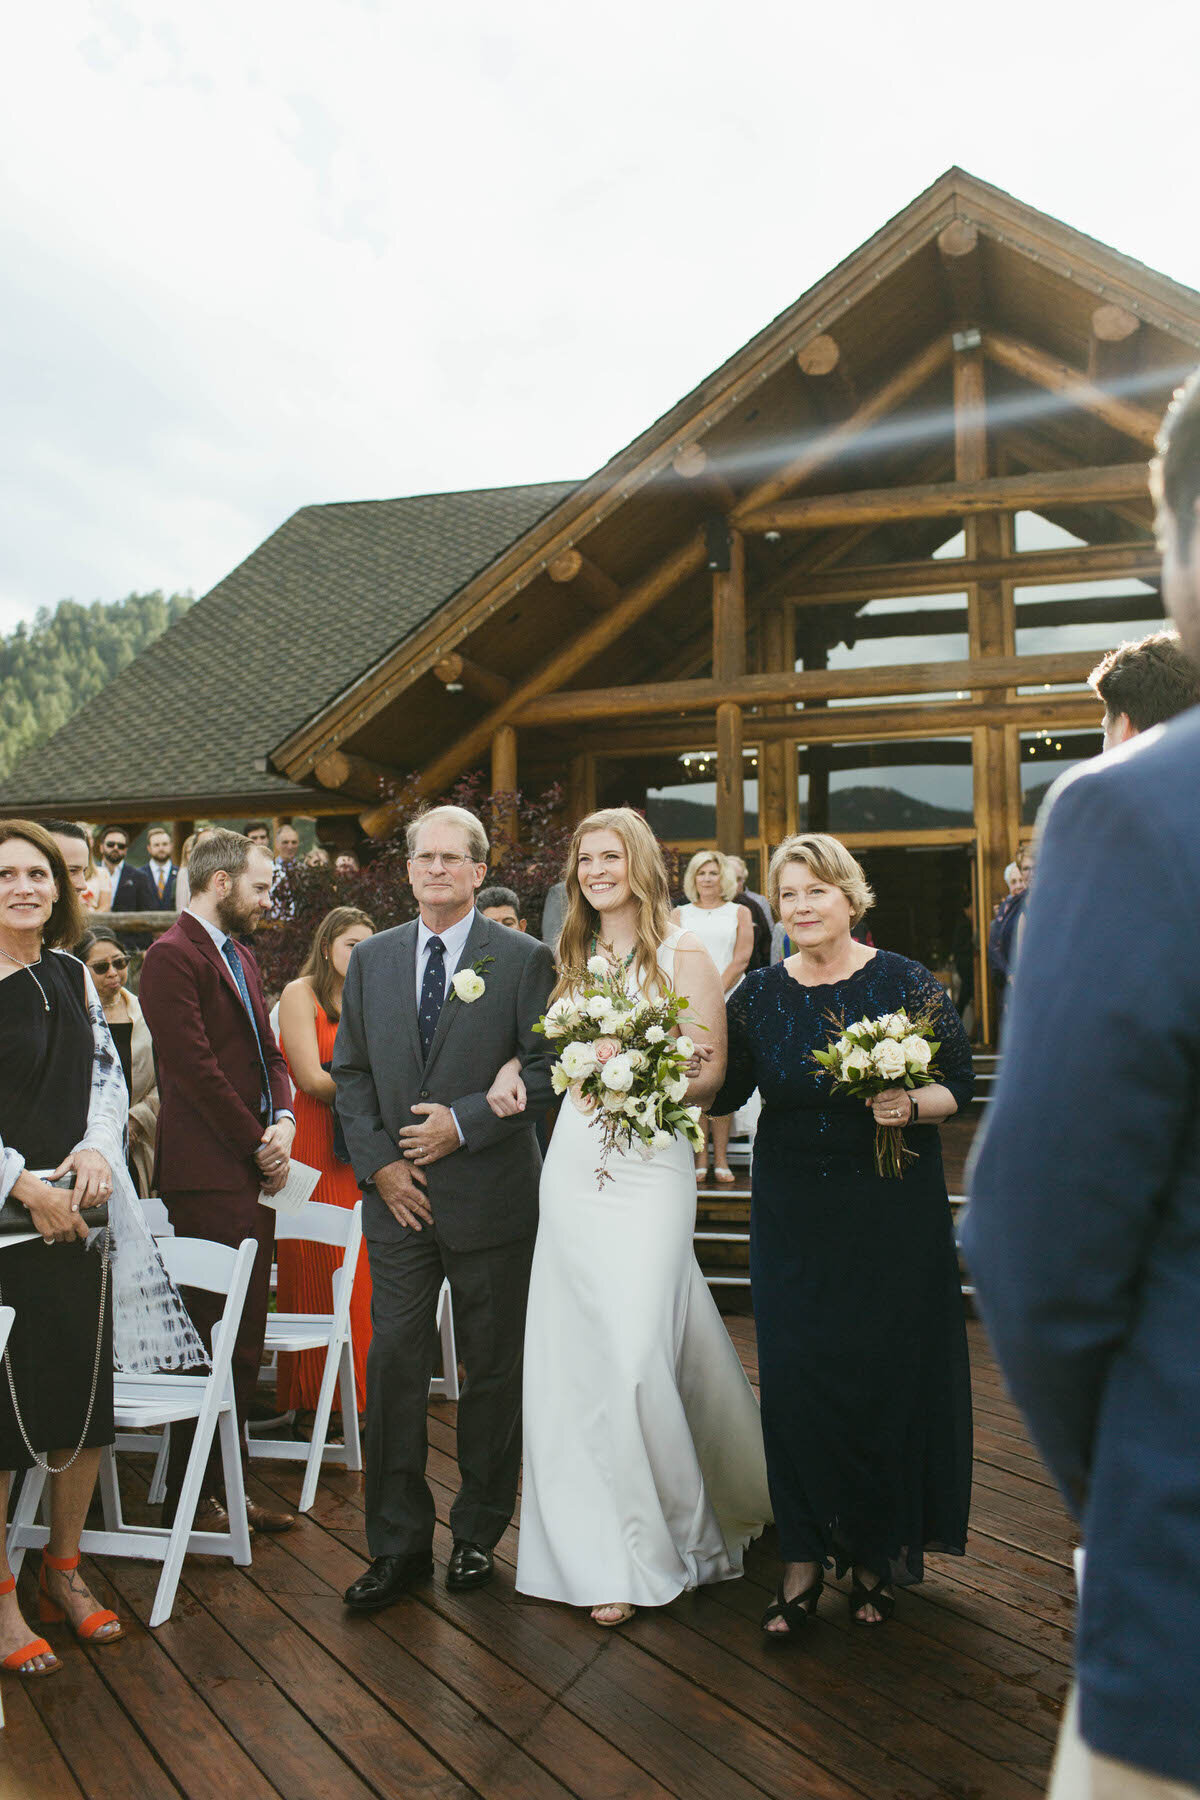 A man and woman walk the bride down the aisle in an outdoor wedding